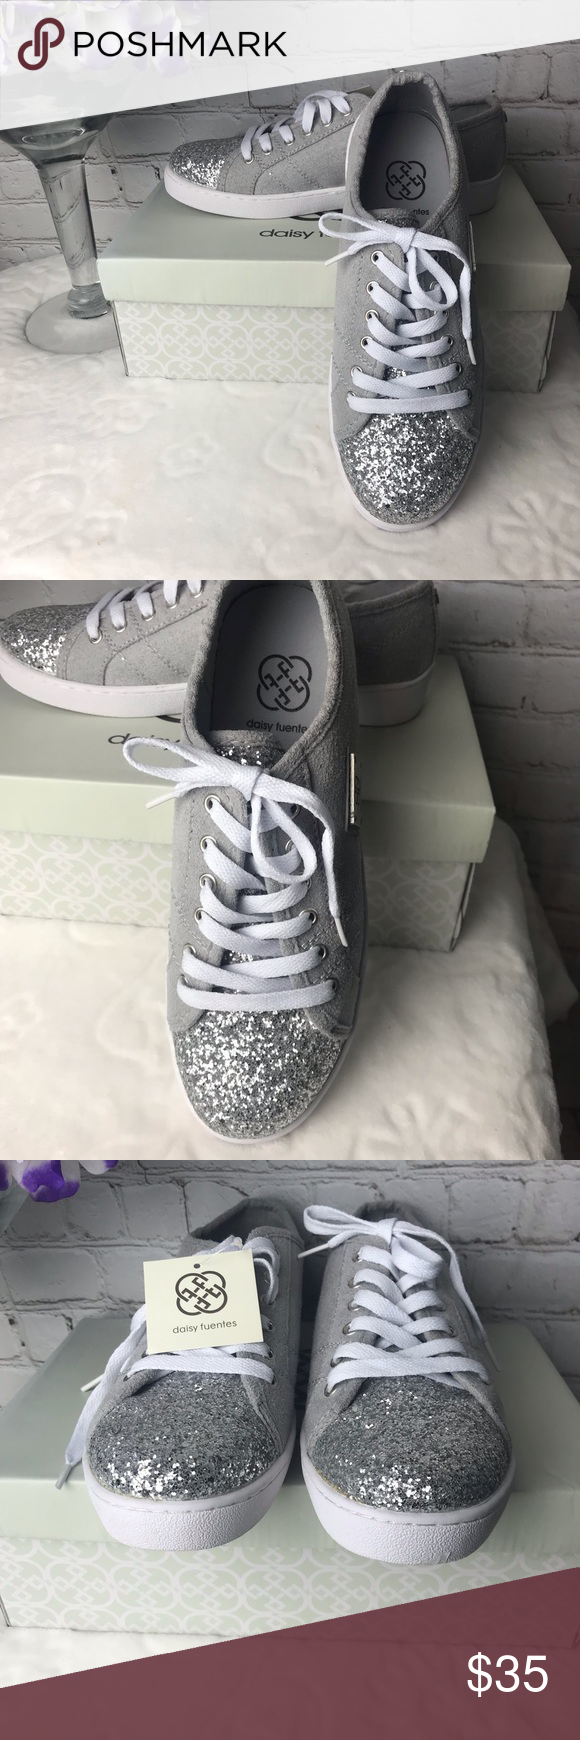 daisy fuentes glitter tennis shoes